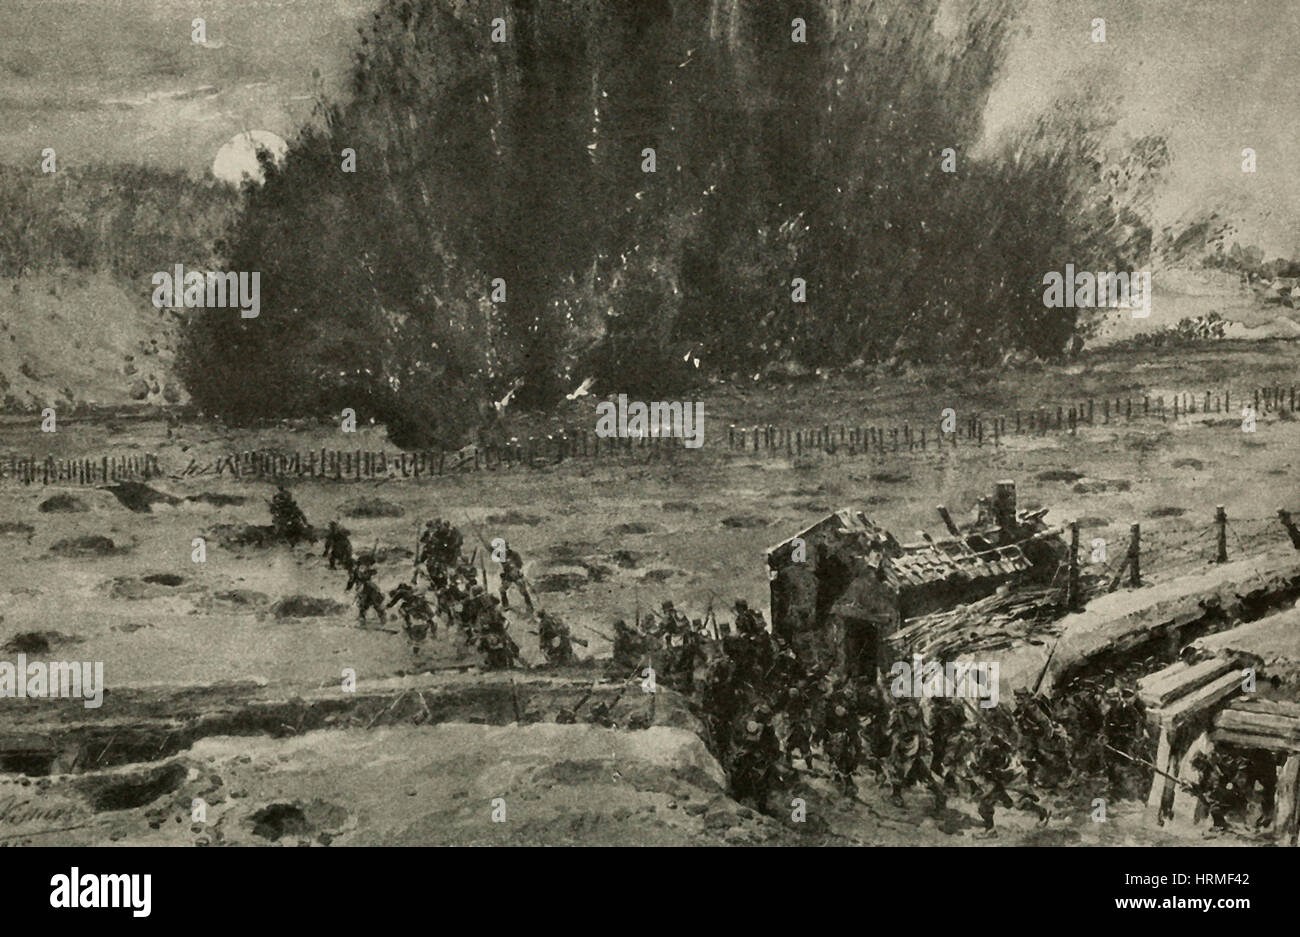 A Land mine exploding under enemy's trenches in World War I - Stock Image